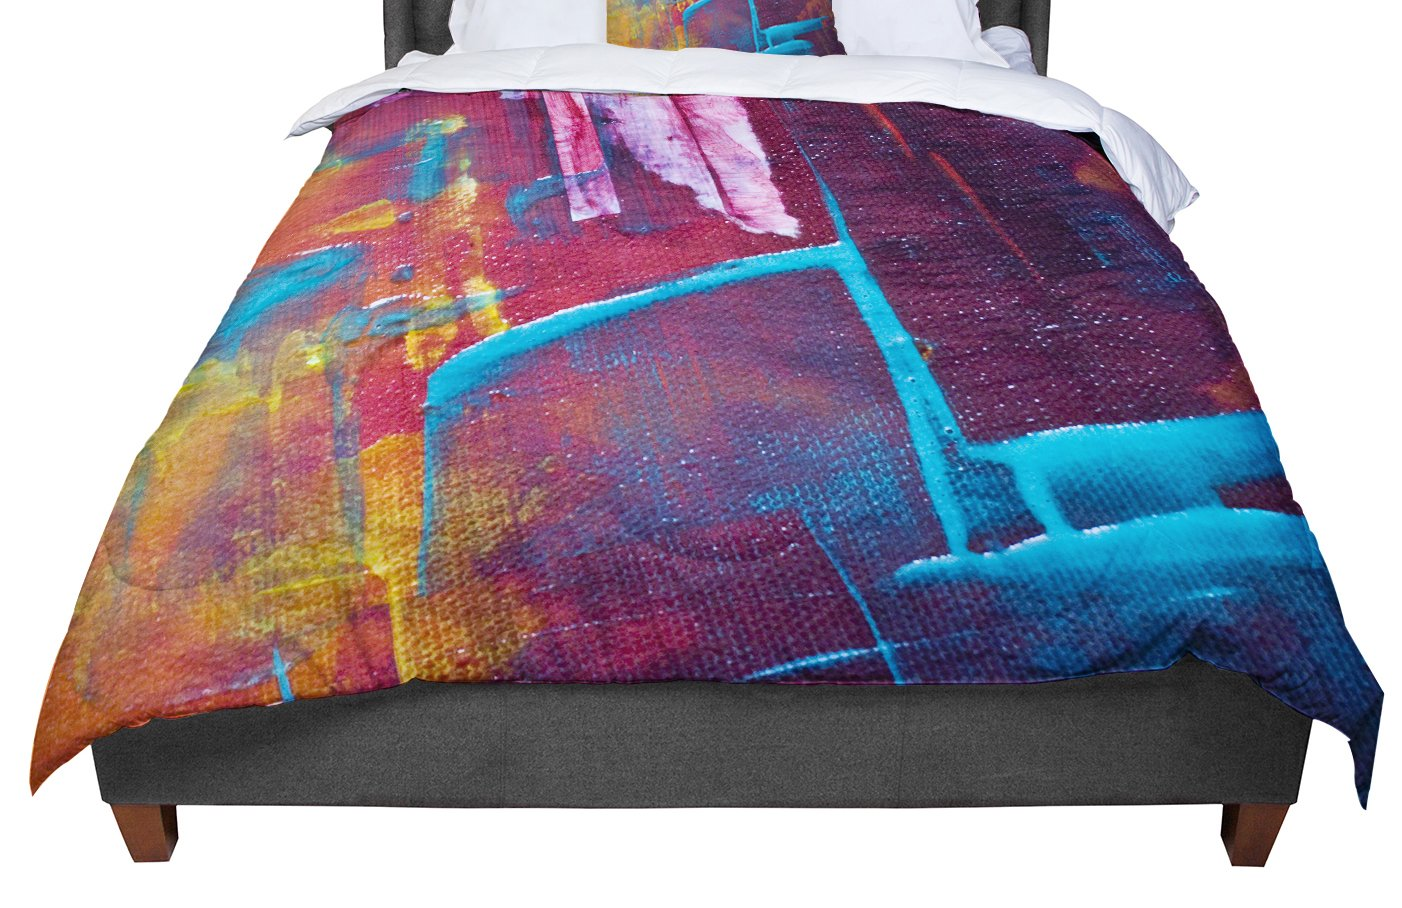 Cal King Comforter 104 X 88 KESS InHouse Malia Shields Cityscape Abstracts II Multicolor Painting King